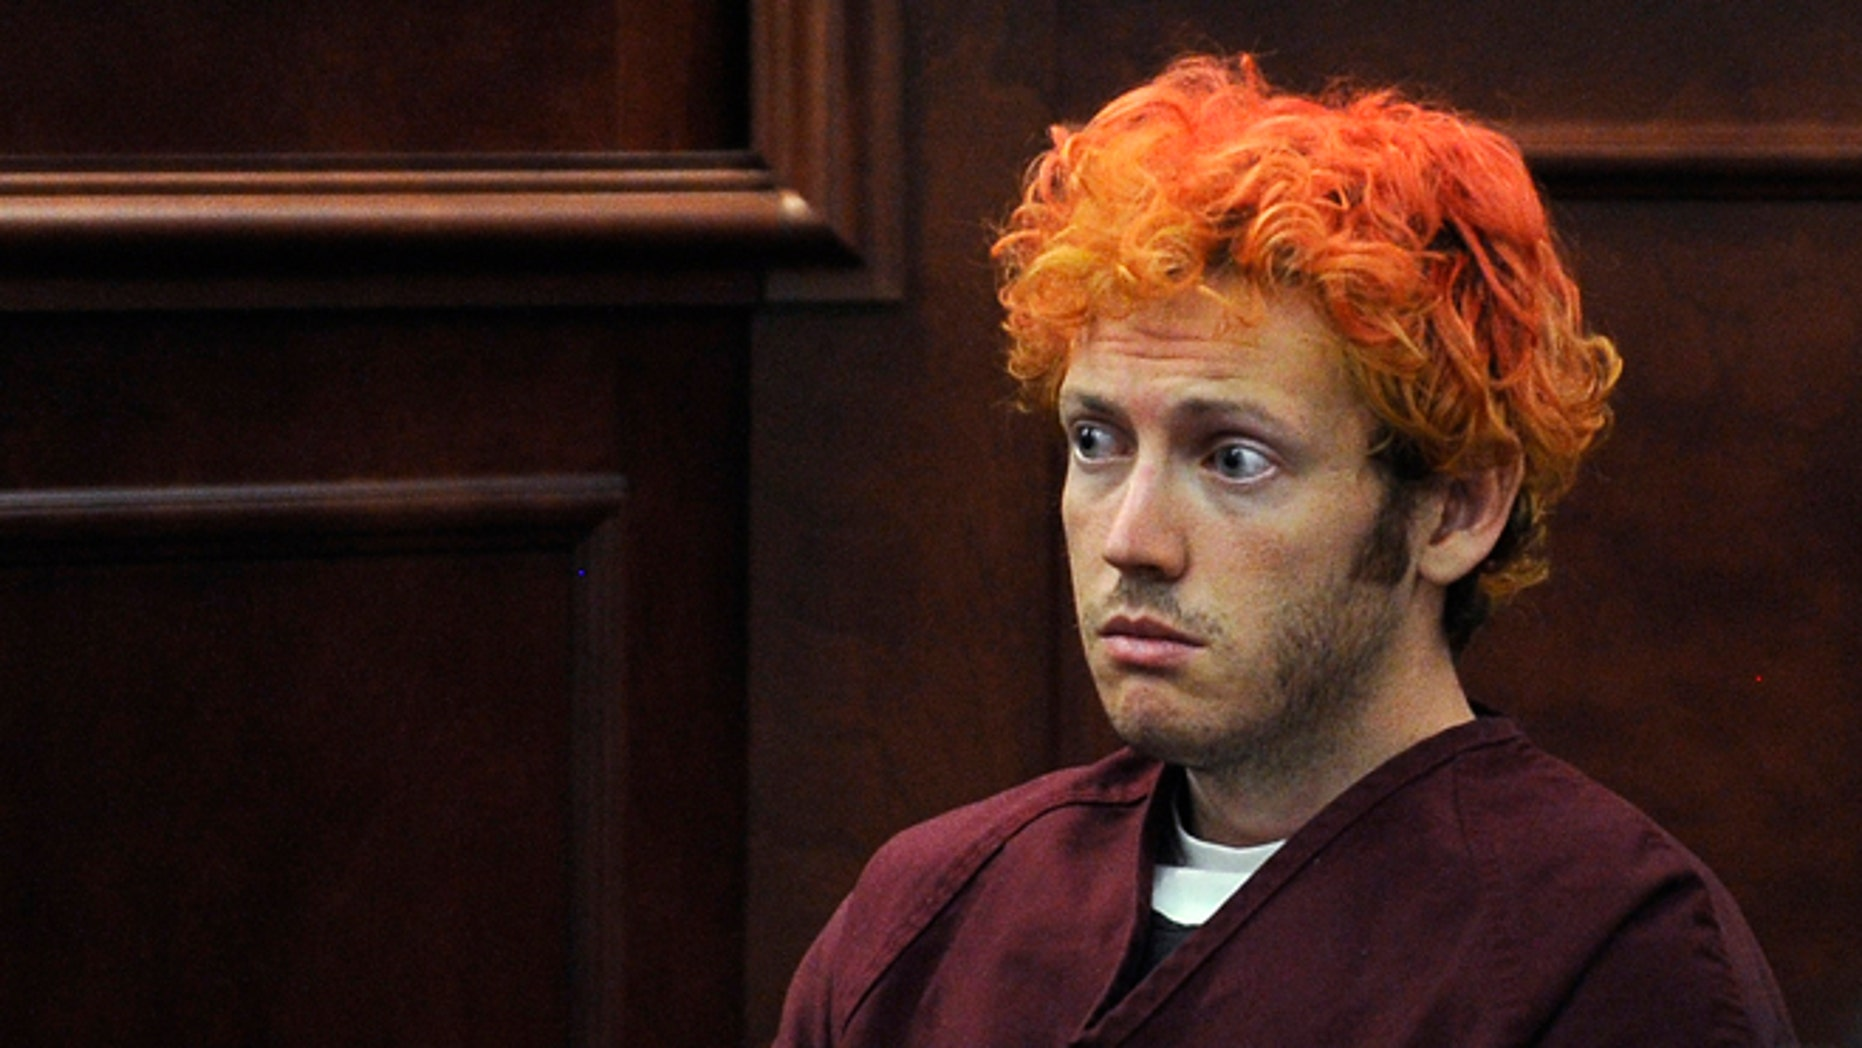 July 23, 2012: In this file photo, James E. Holmes appears in Arapahoe County District Court in Centennial, Colo.